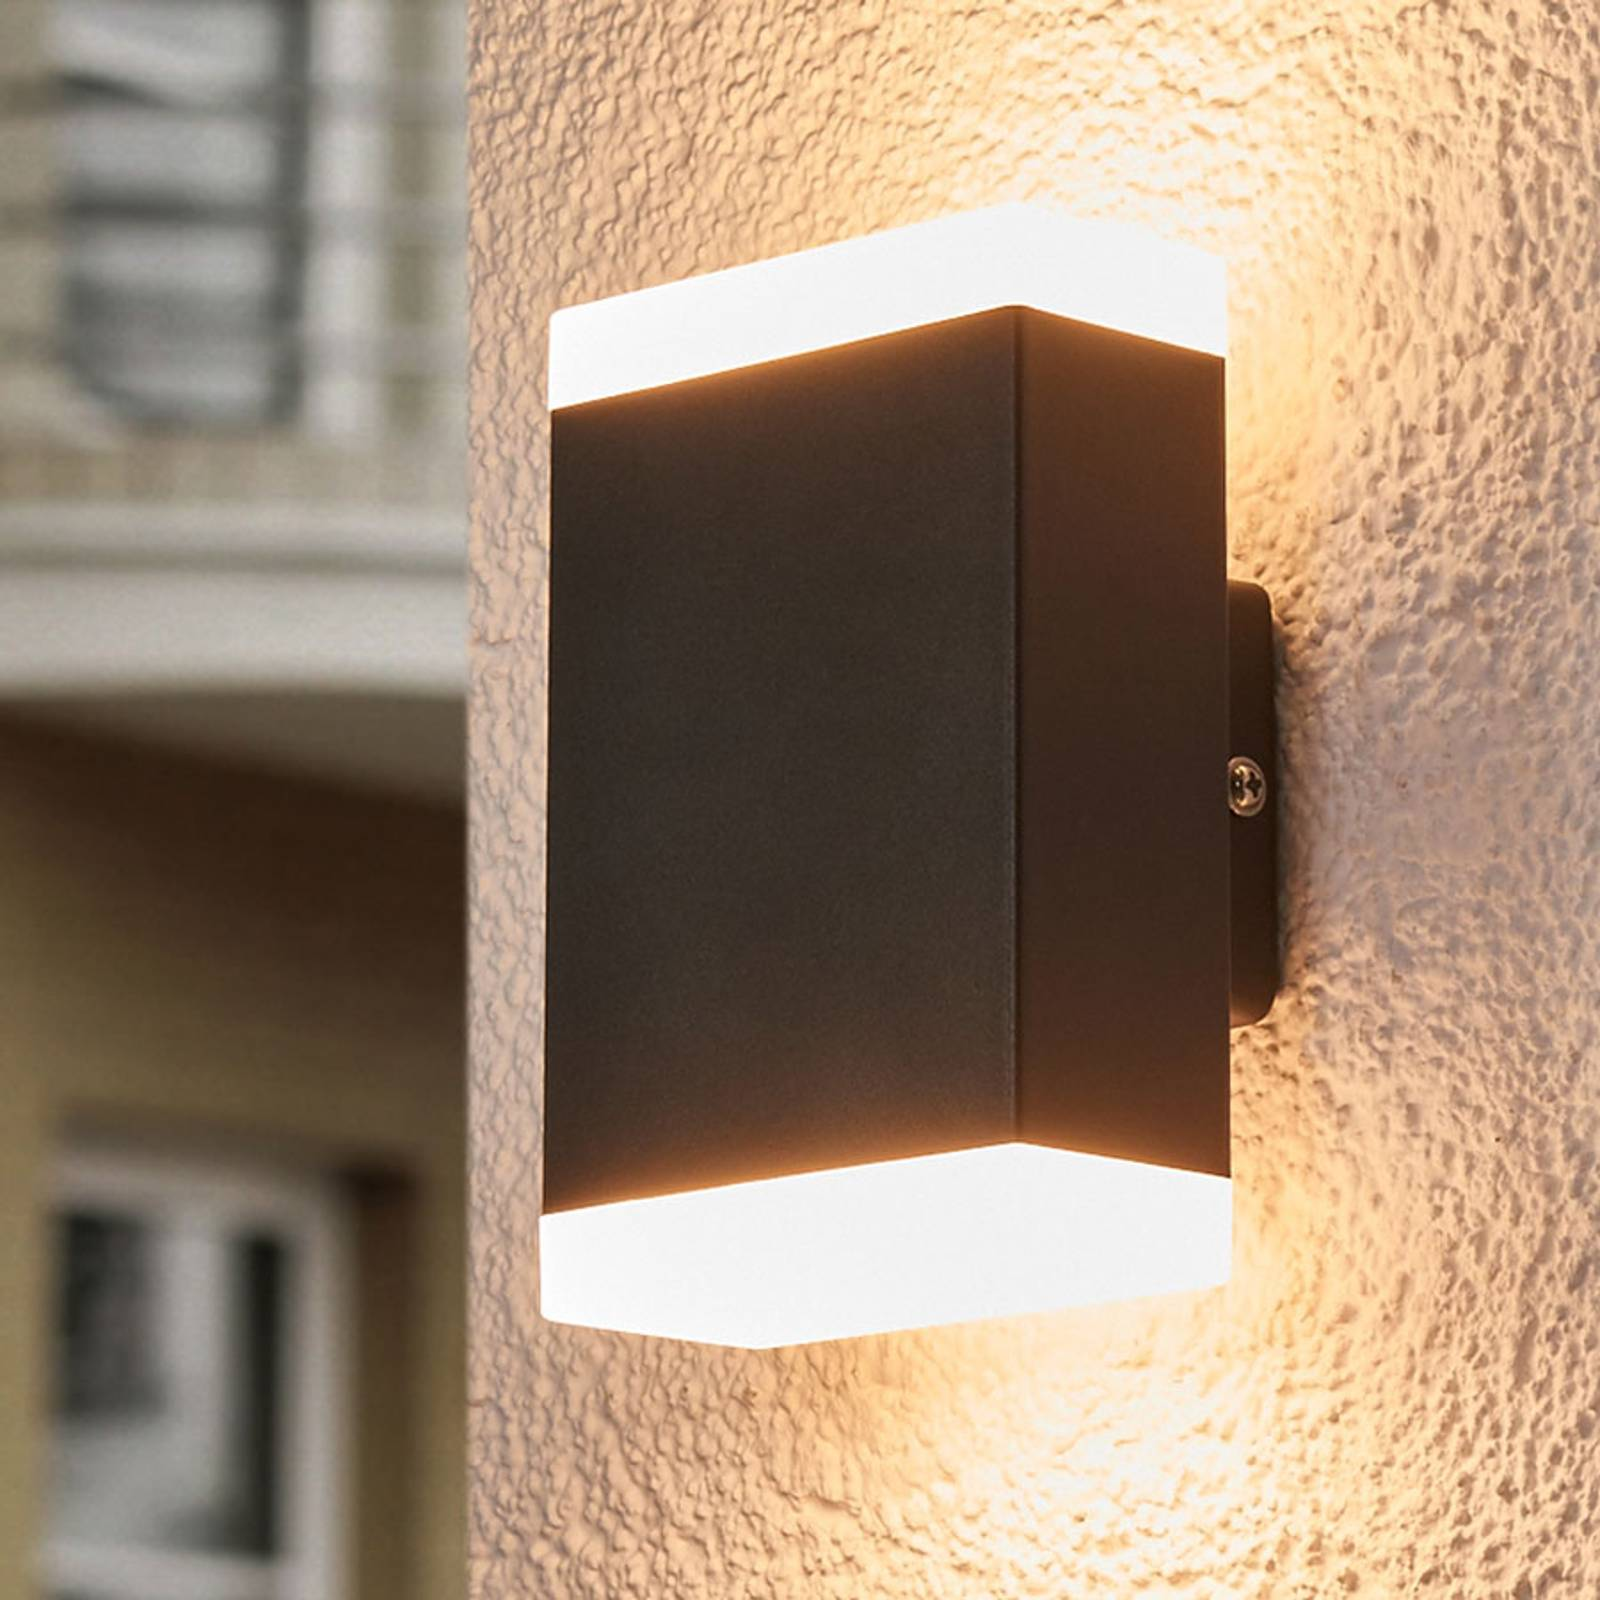 Timeless LED wall light Aya for outdoors - IP44 from Lampenwelt.com